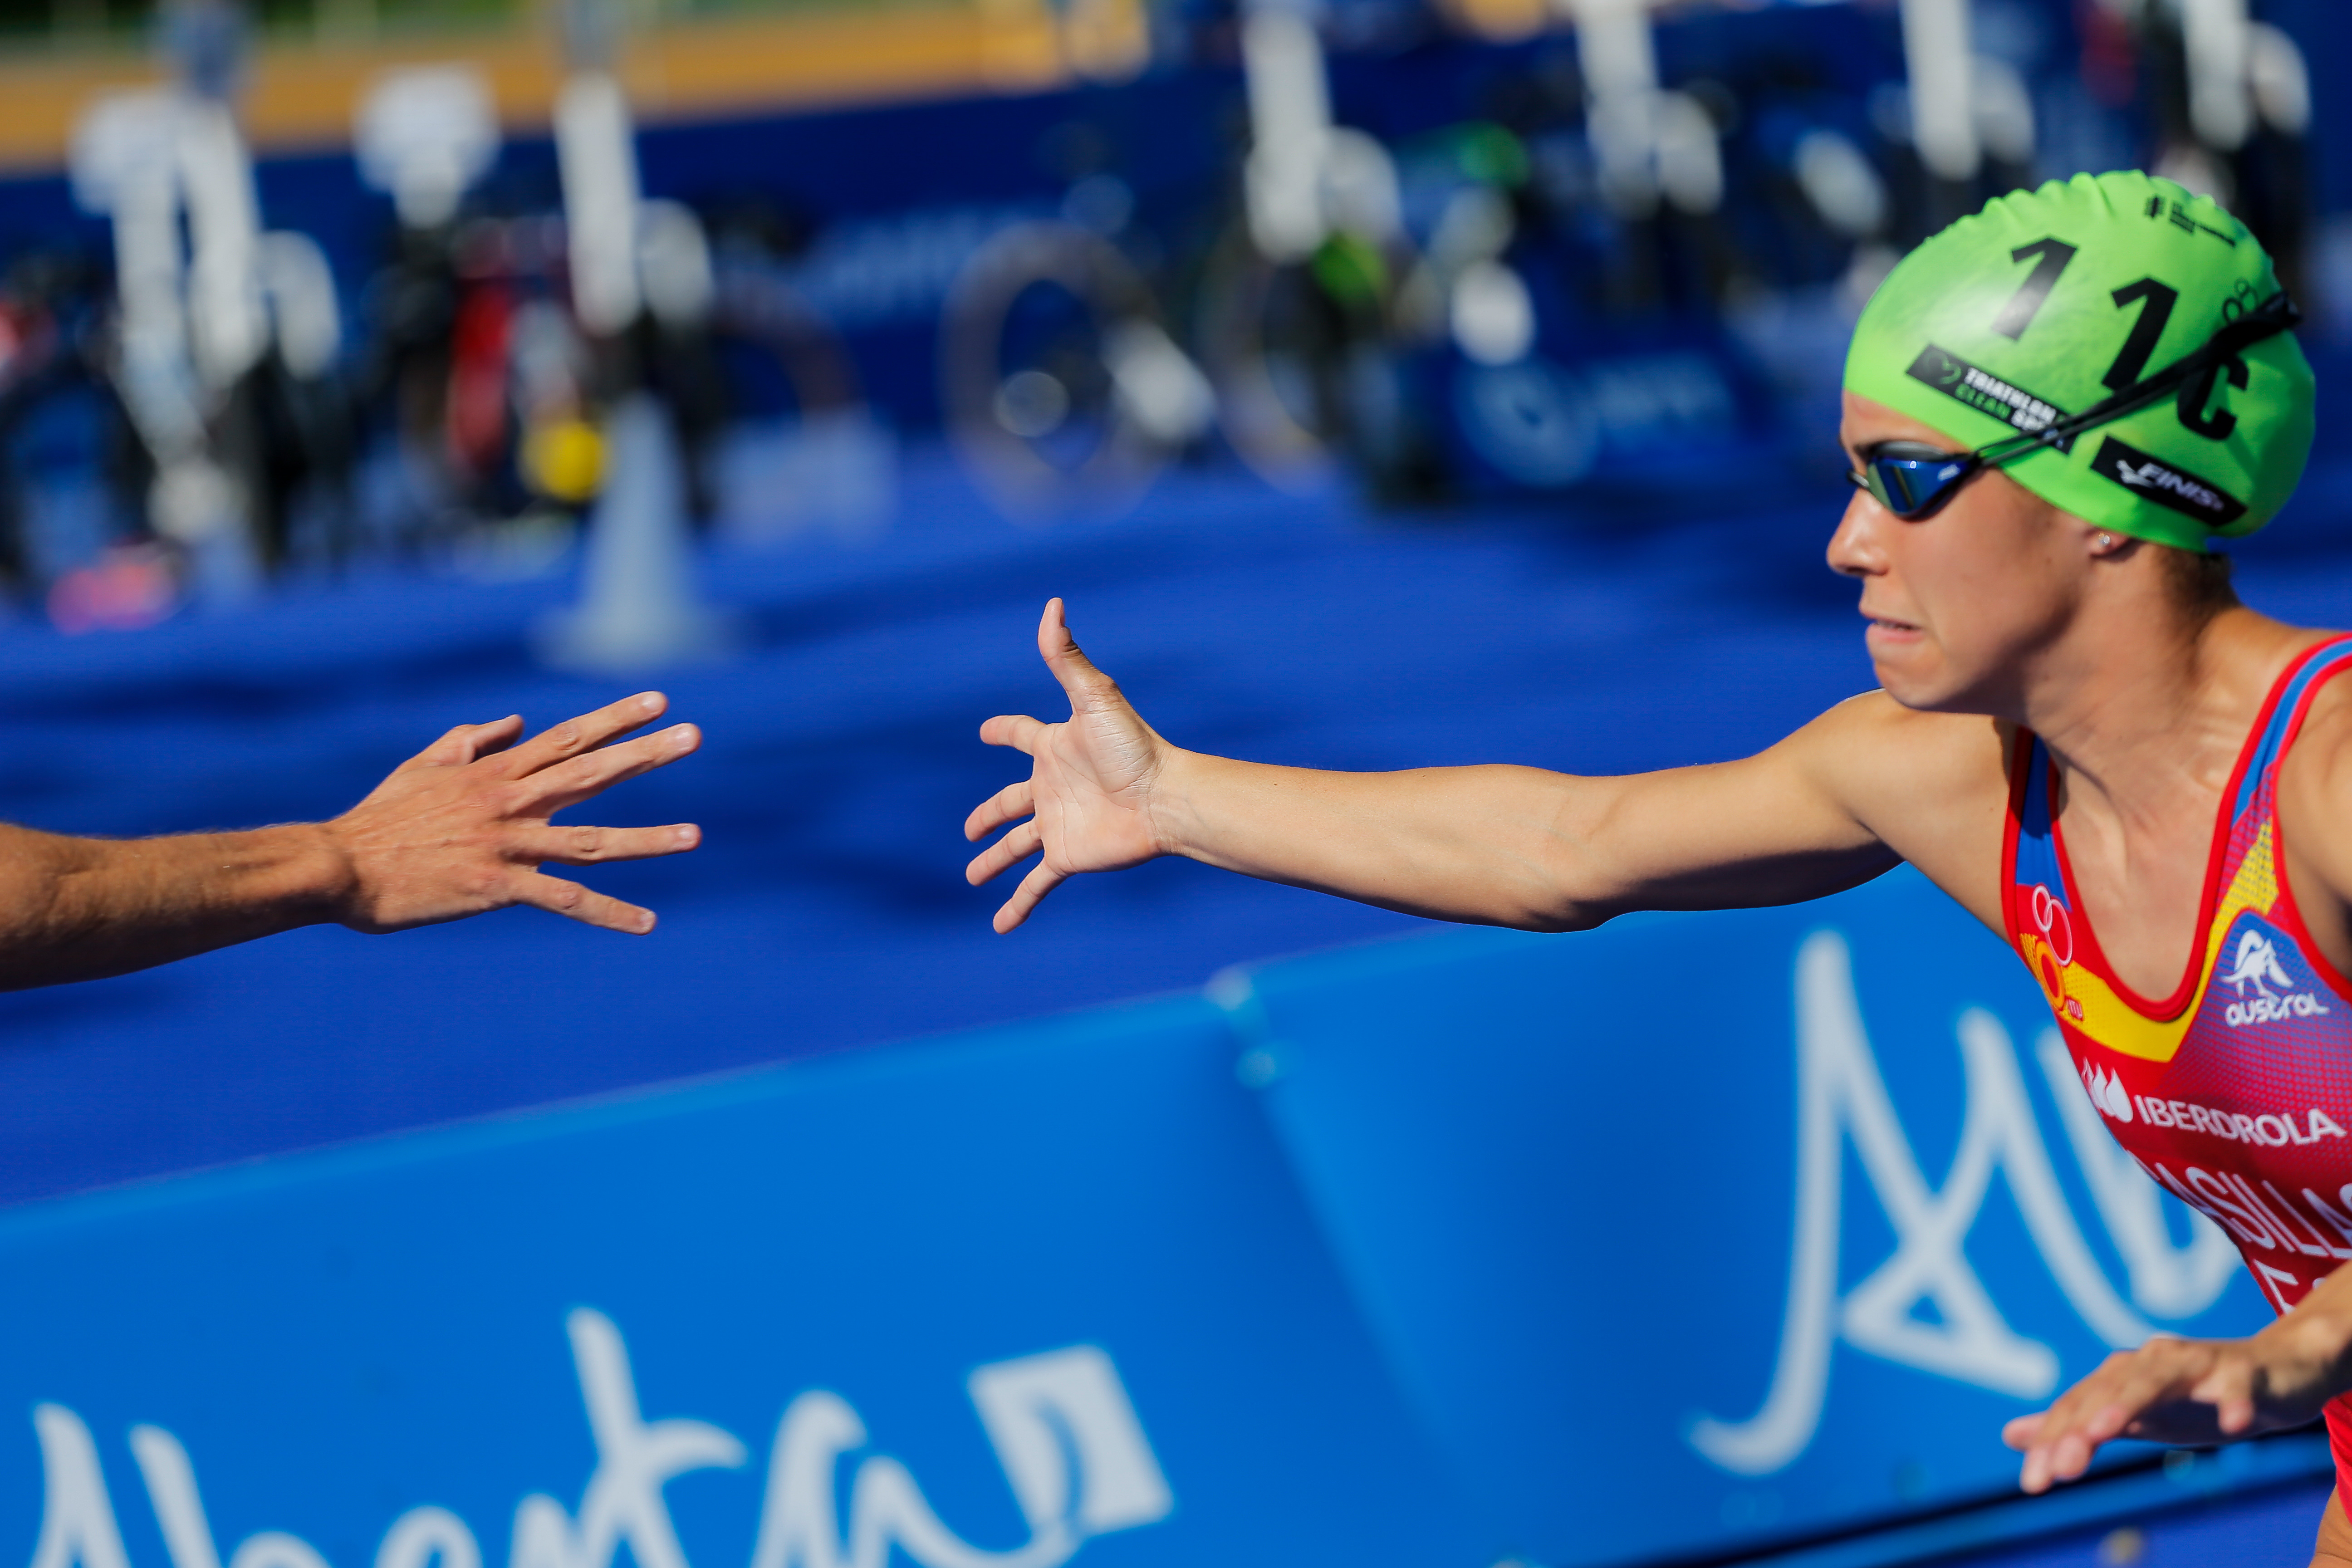 ITU moves 2020 Chengdu Mixed Relay Olympic Qualification Event to Valencia (Spain)